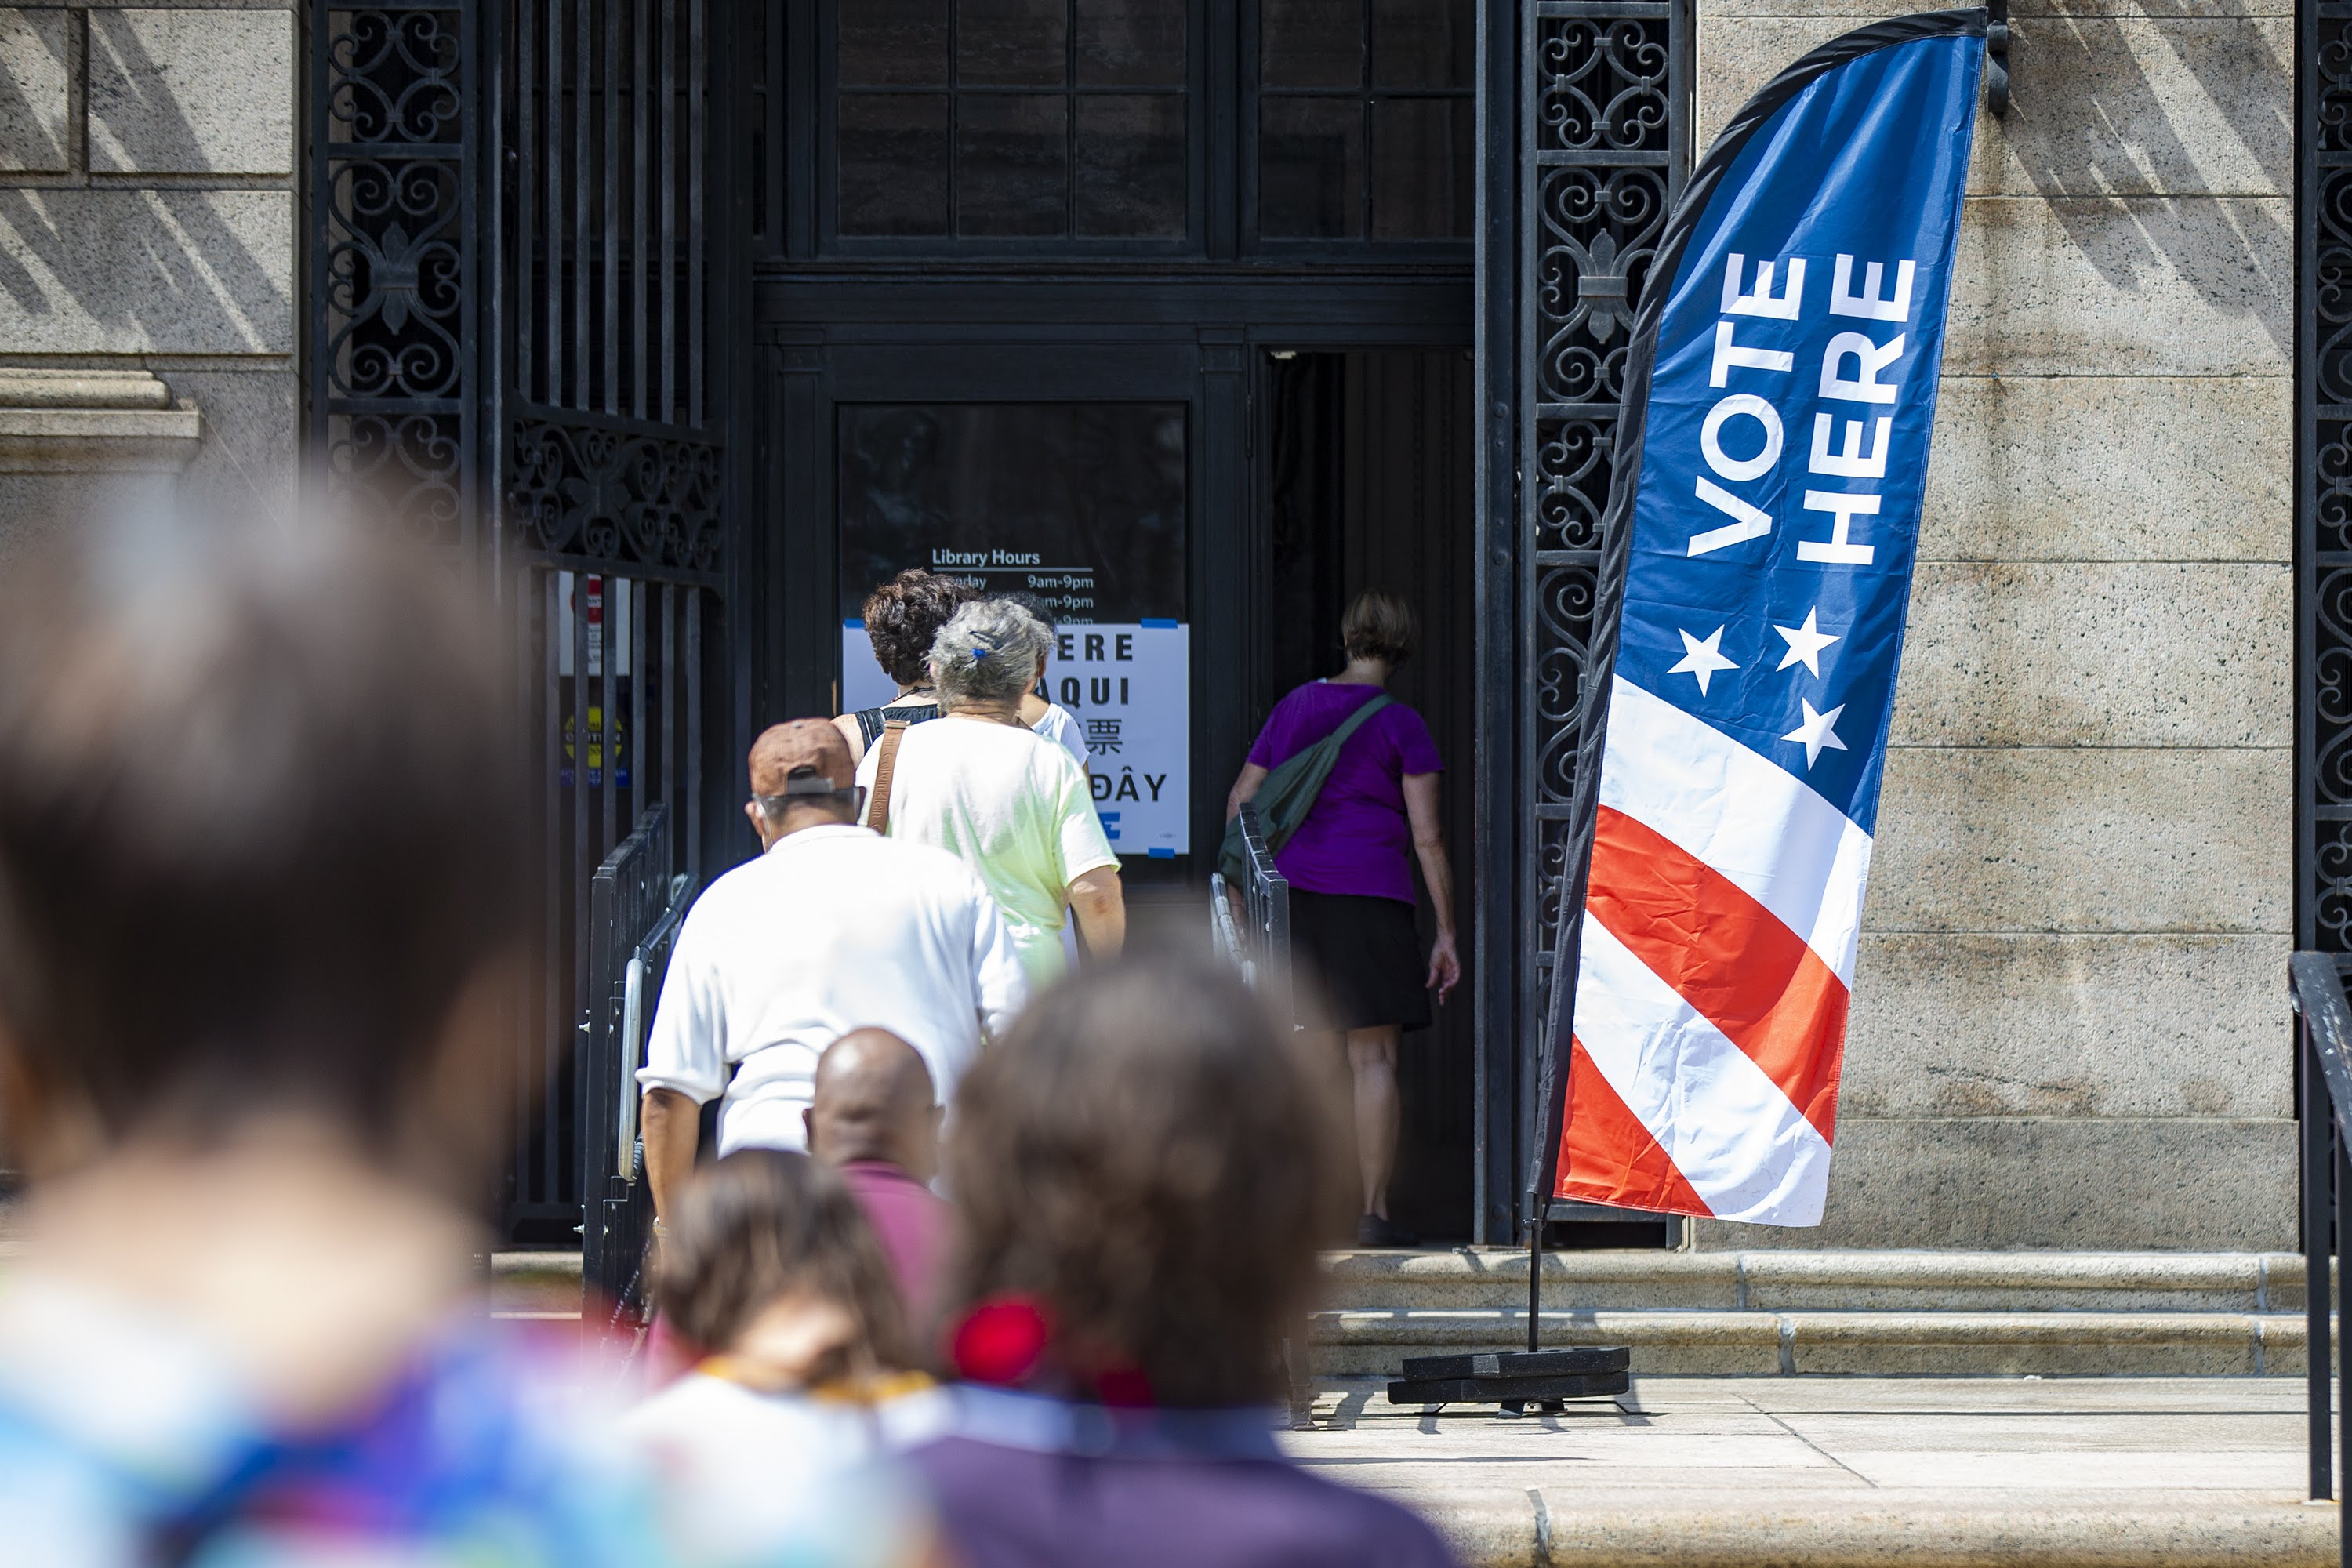 Voters stand in line six feet apart outside the Boston Public Library on the first day of early voting, Aug. 22, for the Massachusetts primary. (Jesse Costa/WBUR)